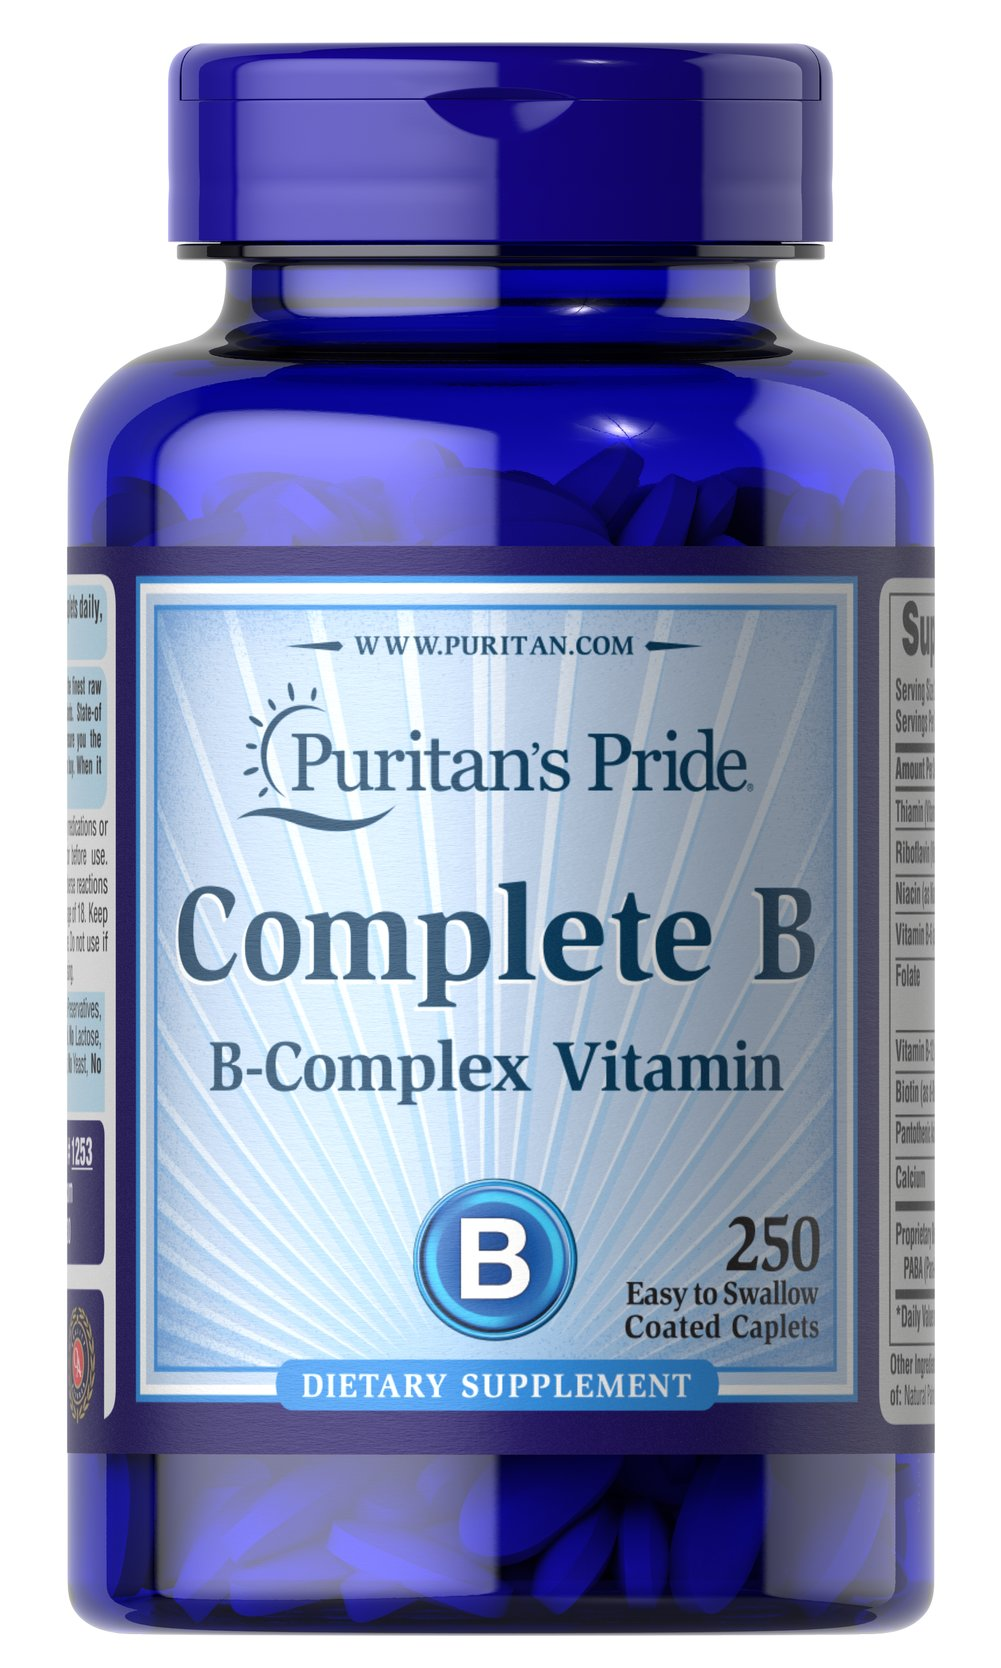 Complete B (Vitamin B Complex) <p>Complete Vitamin B Complex provides seven important B vitamins in just two caplets without sugar, starch, artificial colors or flavors. You get the entire B family in this sodium-free tablet the best B vitamin nutrition you can buy! Complete B can give you the peace of mind you deserve.</p> 250 Caplets  $25.99